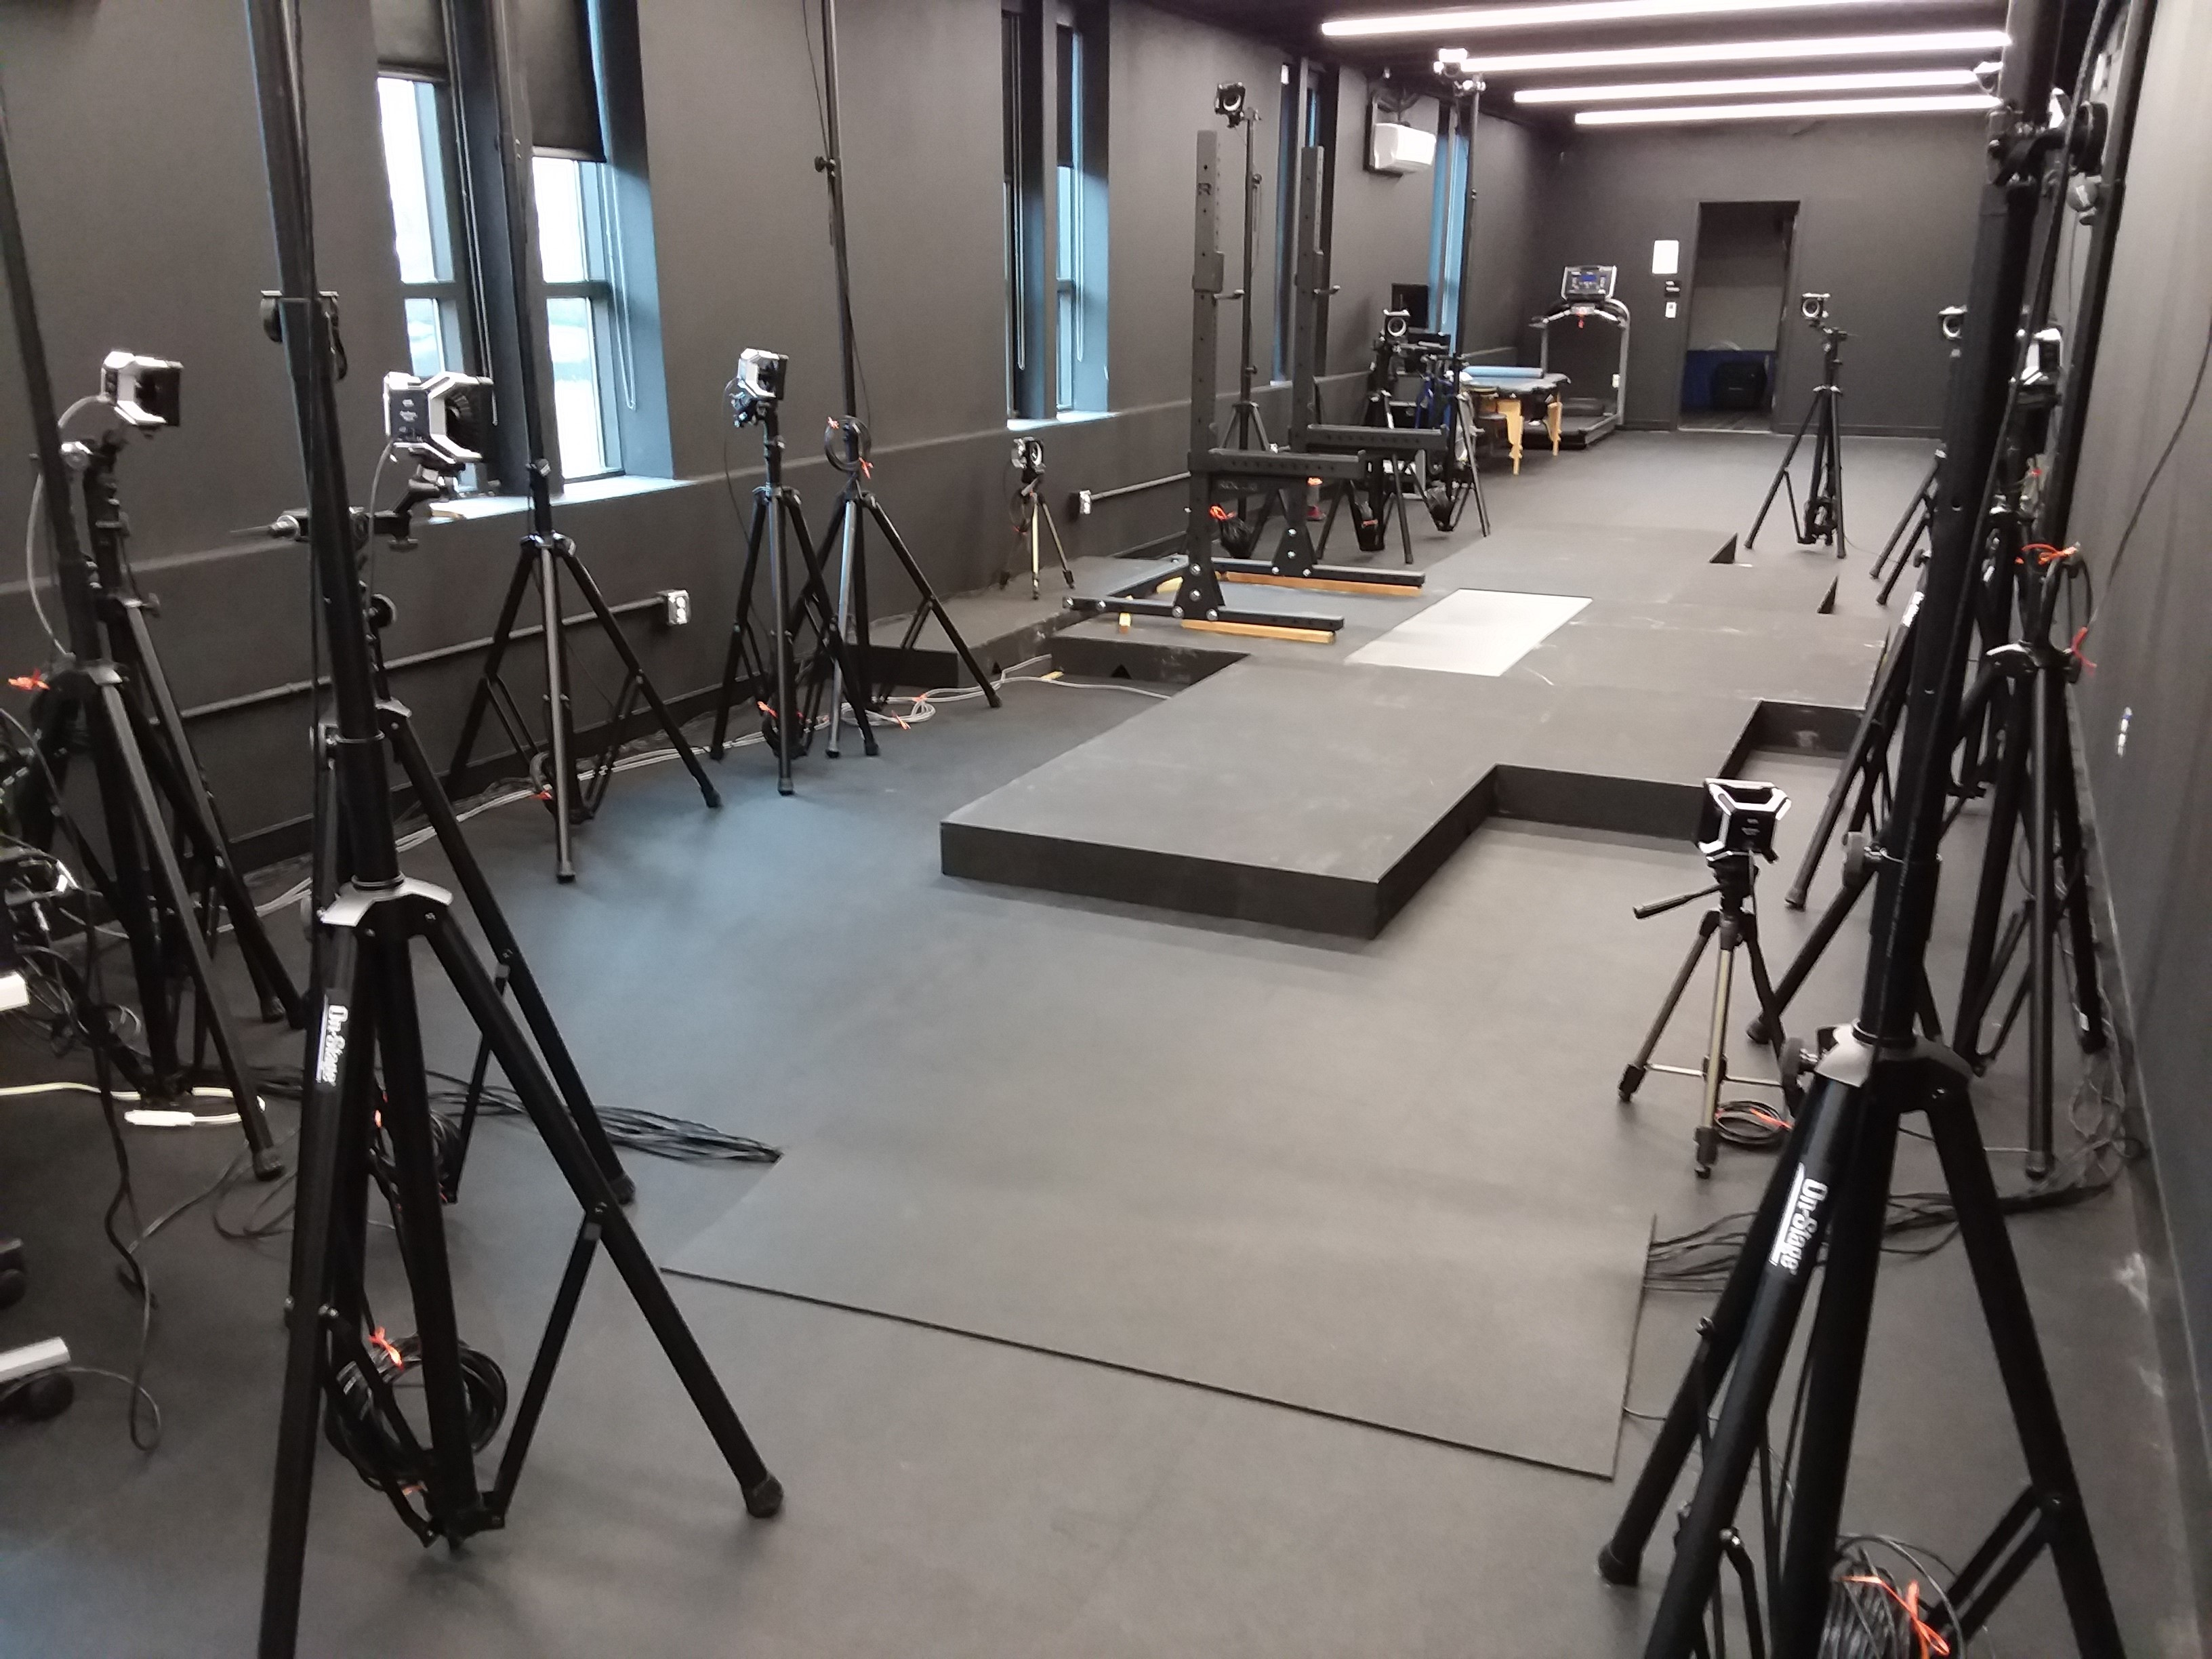 Human Motion Lab - cameras and force plates